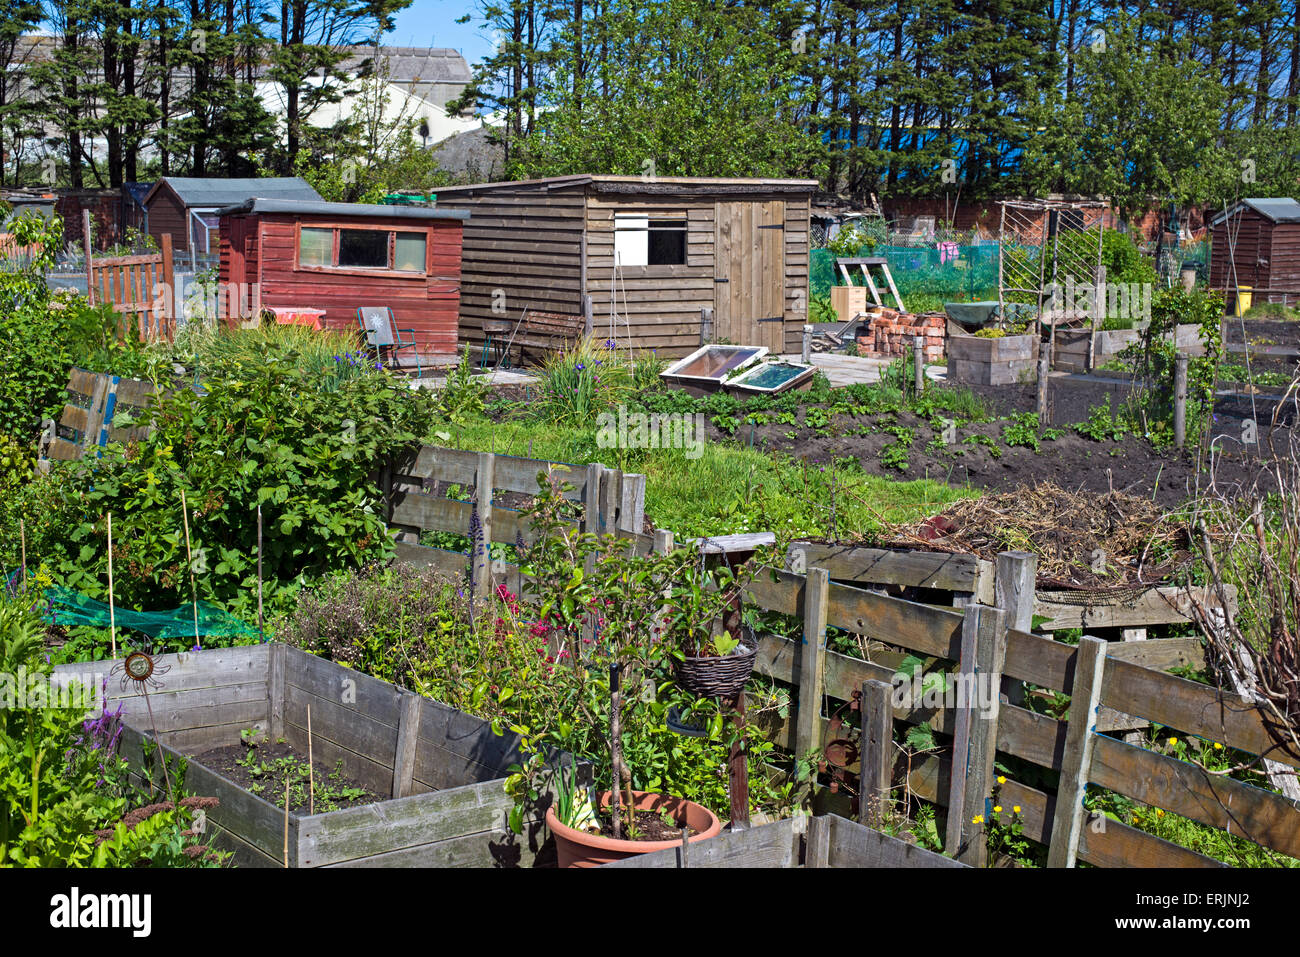 Allotments by Leith Links in Edinburgh, Scotland, UK. - Stock Image